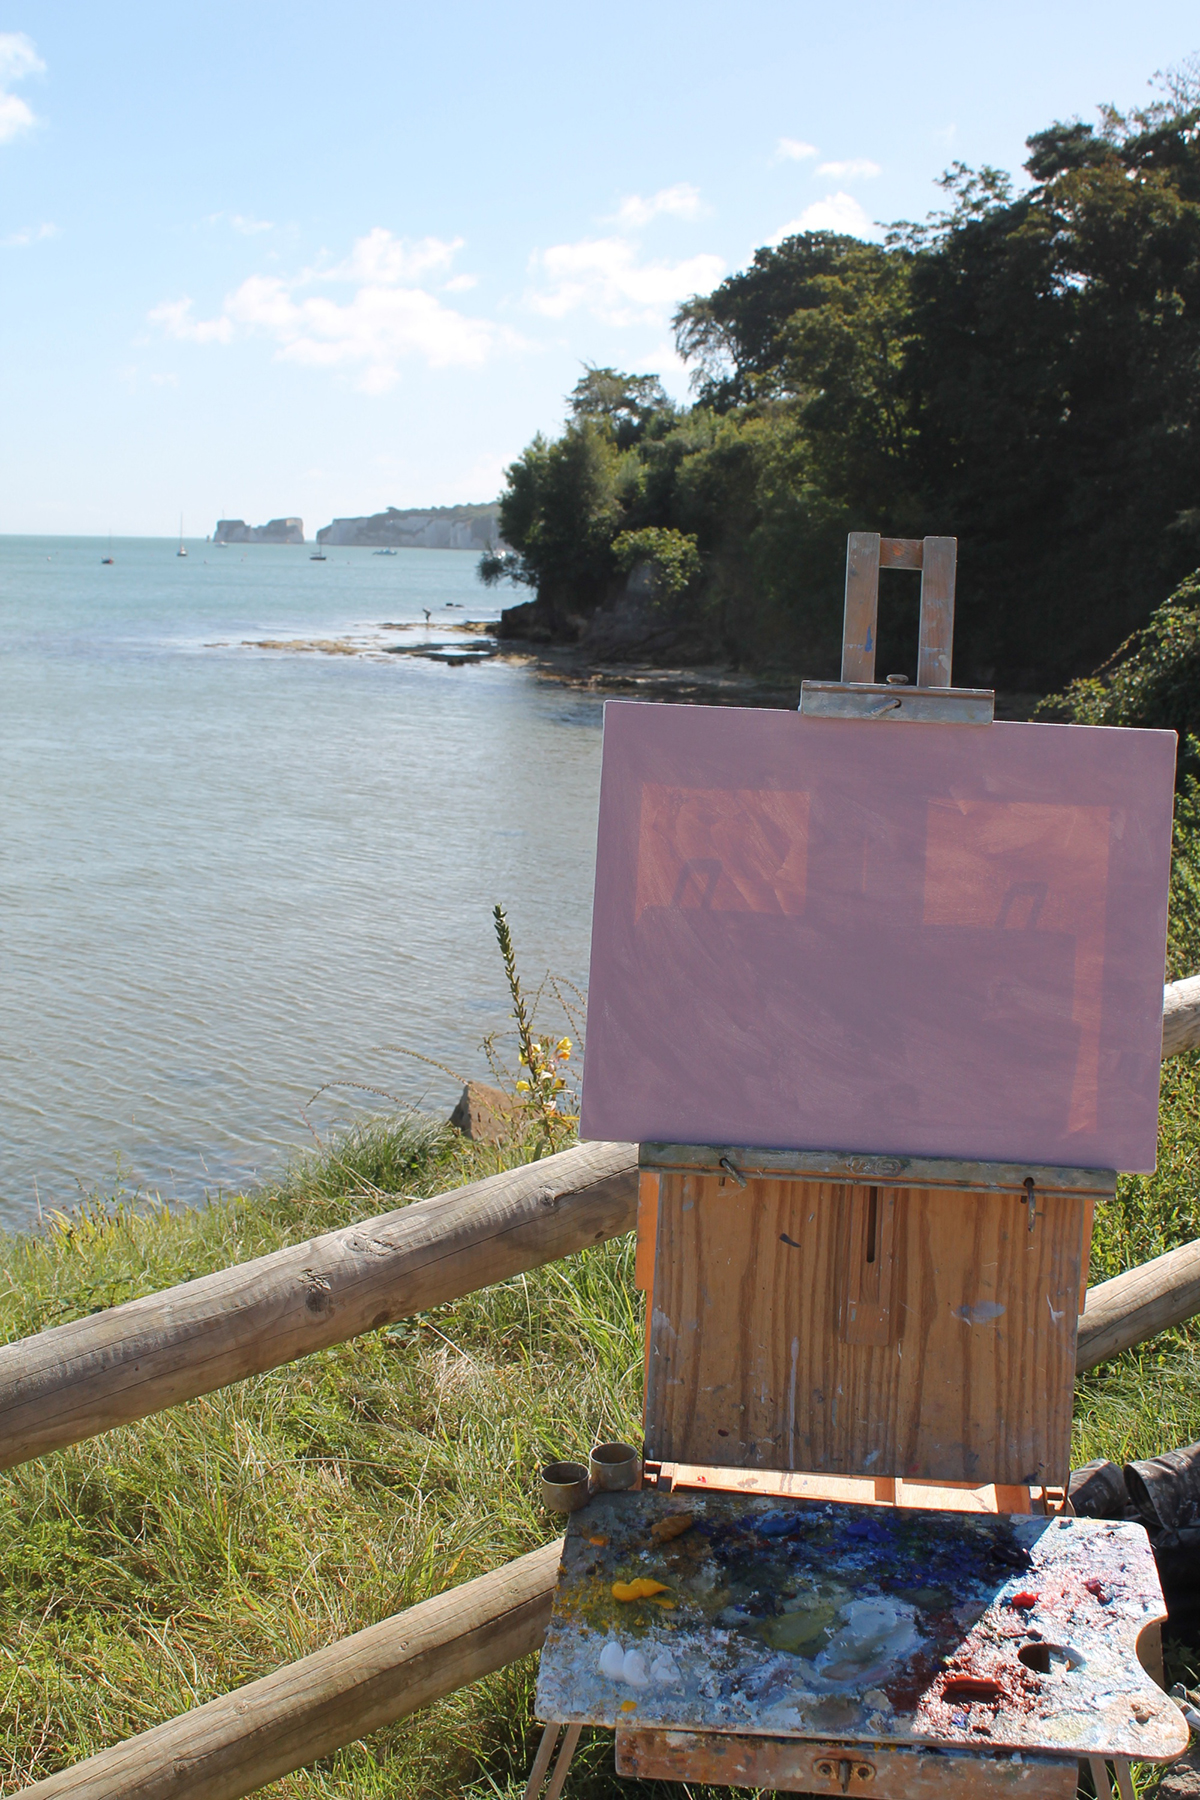 3. Photo showing the view and light coming through the canvas